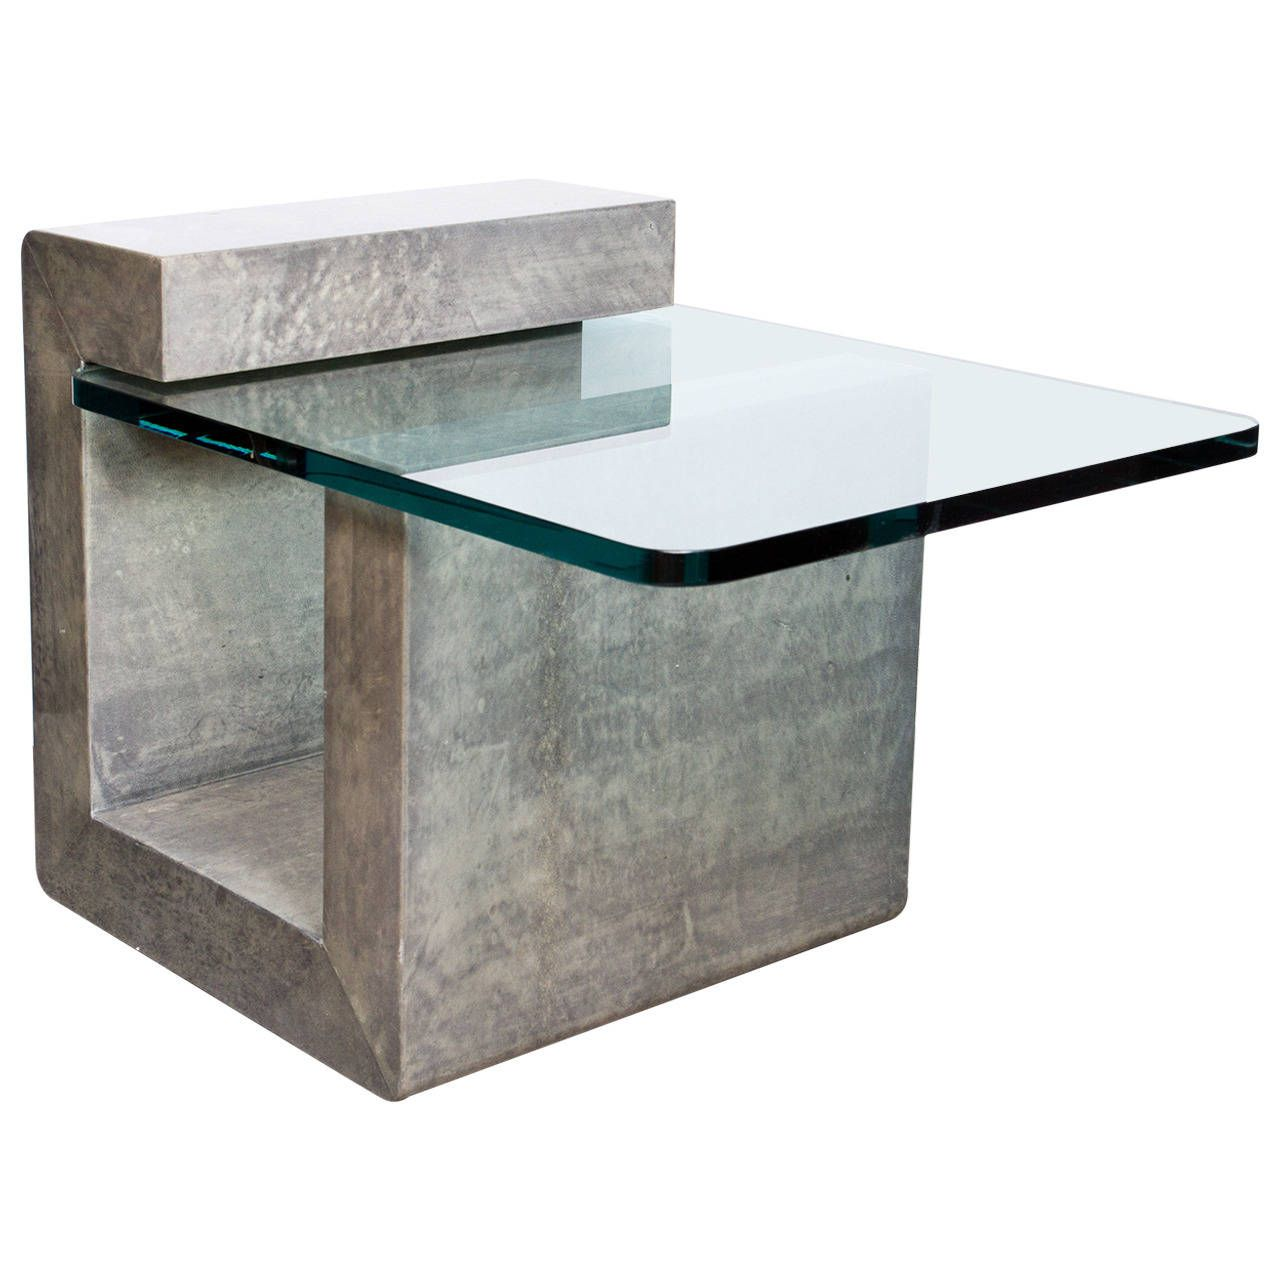 modern sofa table ideas chase charcoal gray sectional modernist lacquered parchment side pinterest